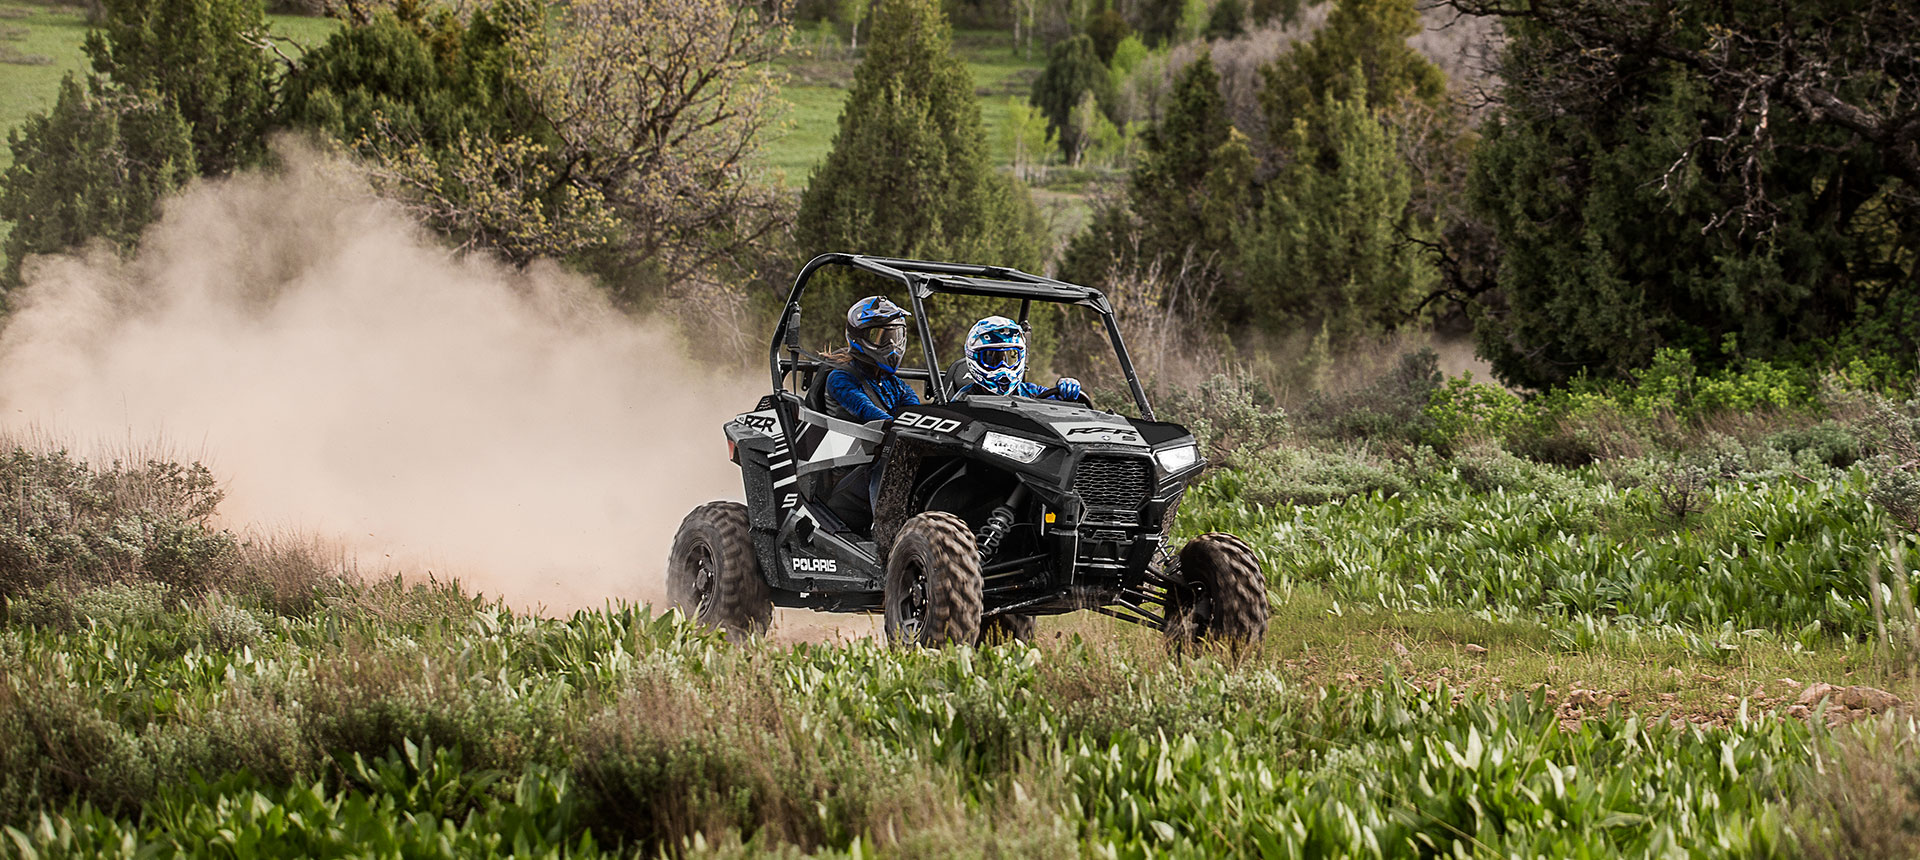 2019 Polaris RZR S 900 in Rapid City, South Dakota - Photo 5